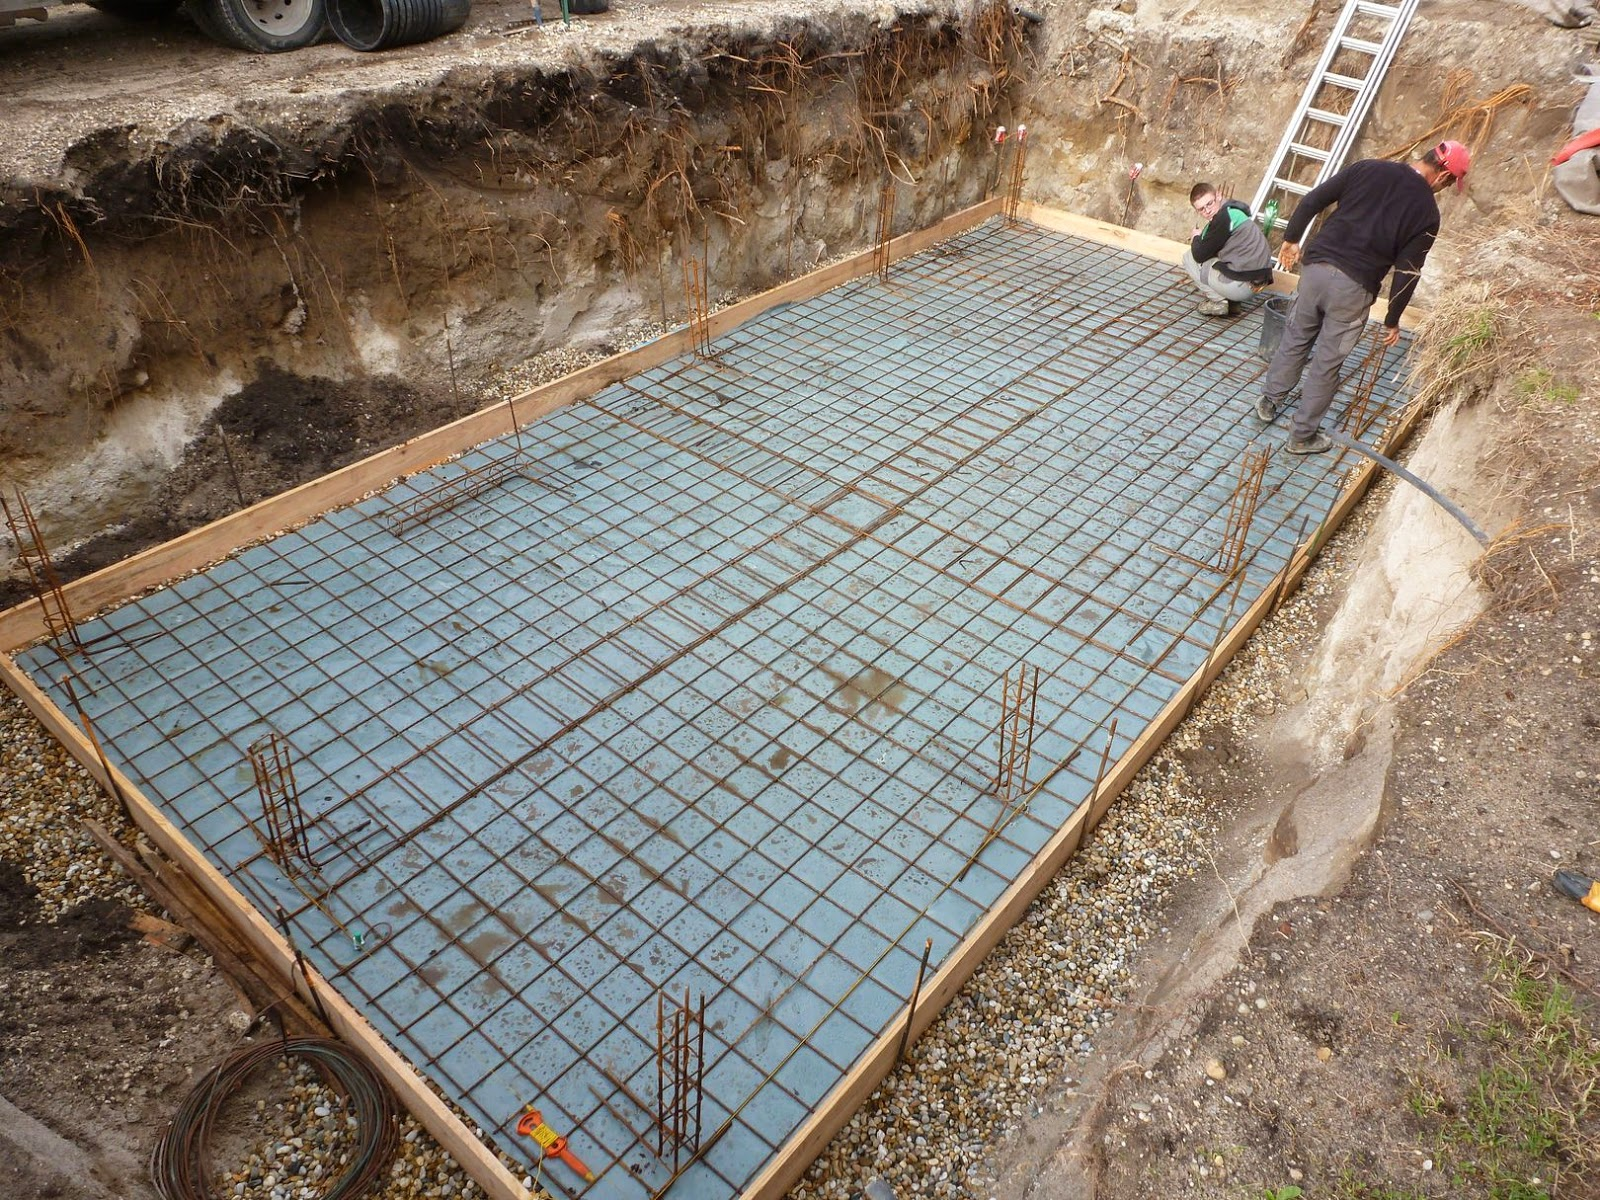 Projet tapes de construction d 39 une piscine en gironde for Construction de piscines